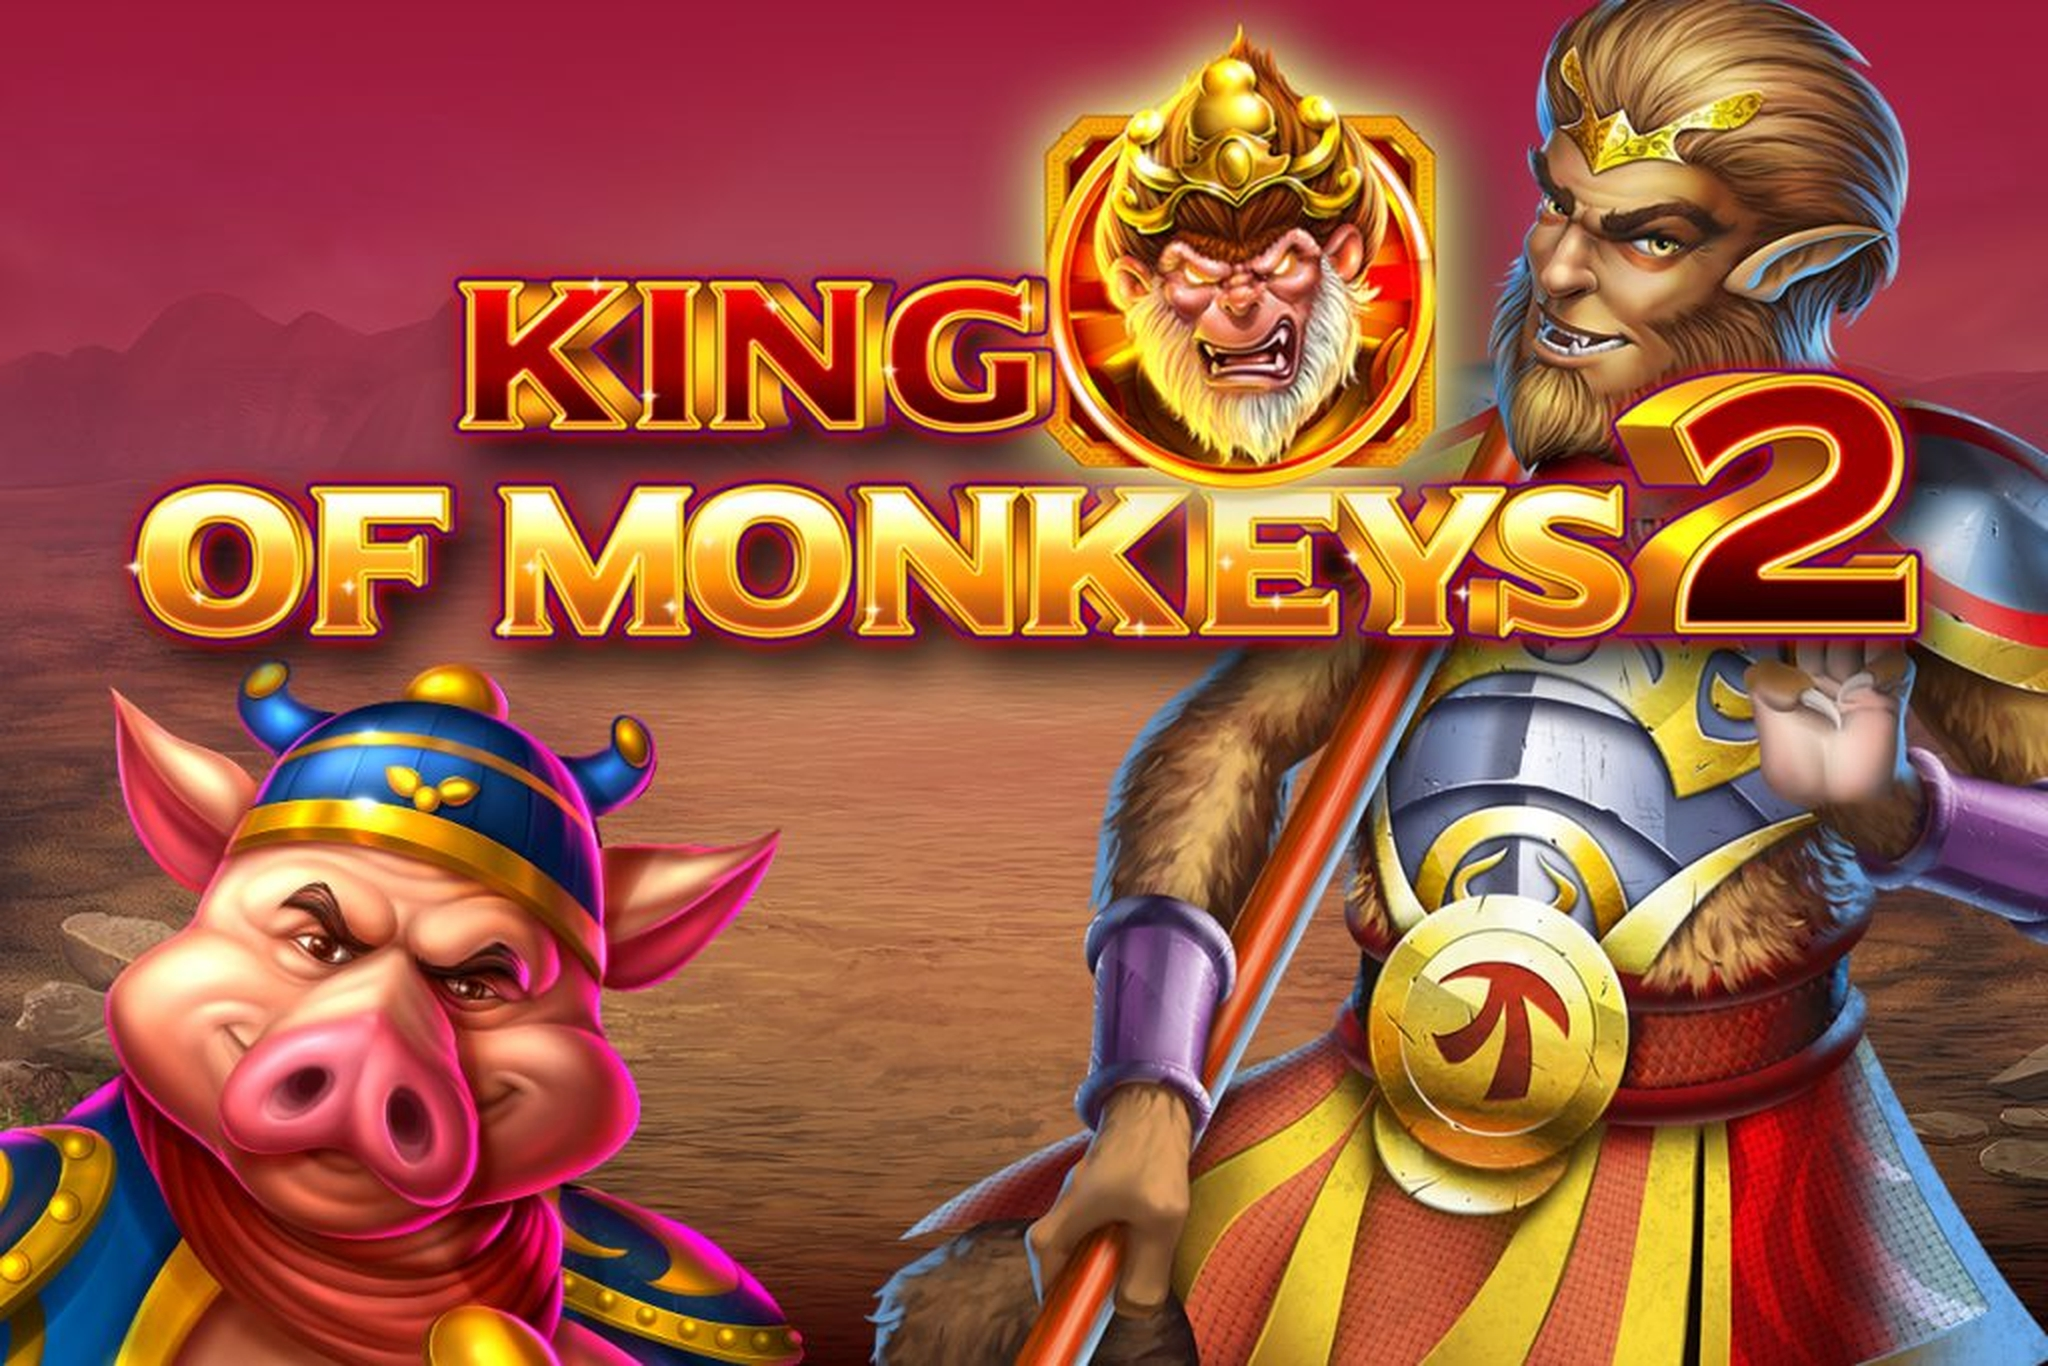 The King Of Monkeys 2 Online Slot Demo Game by GameArt